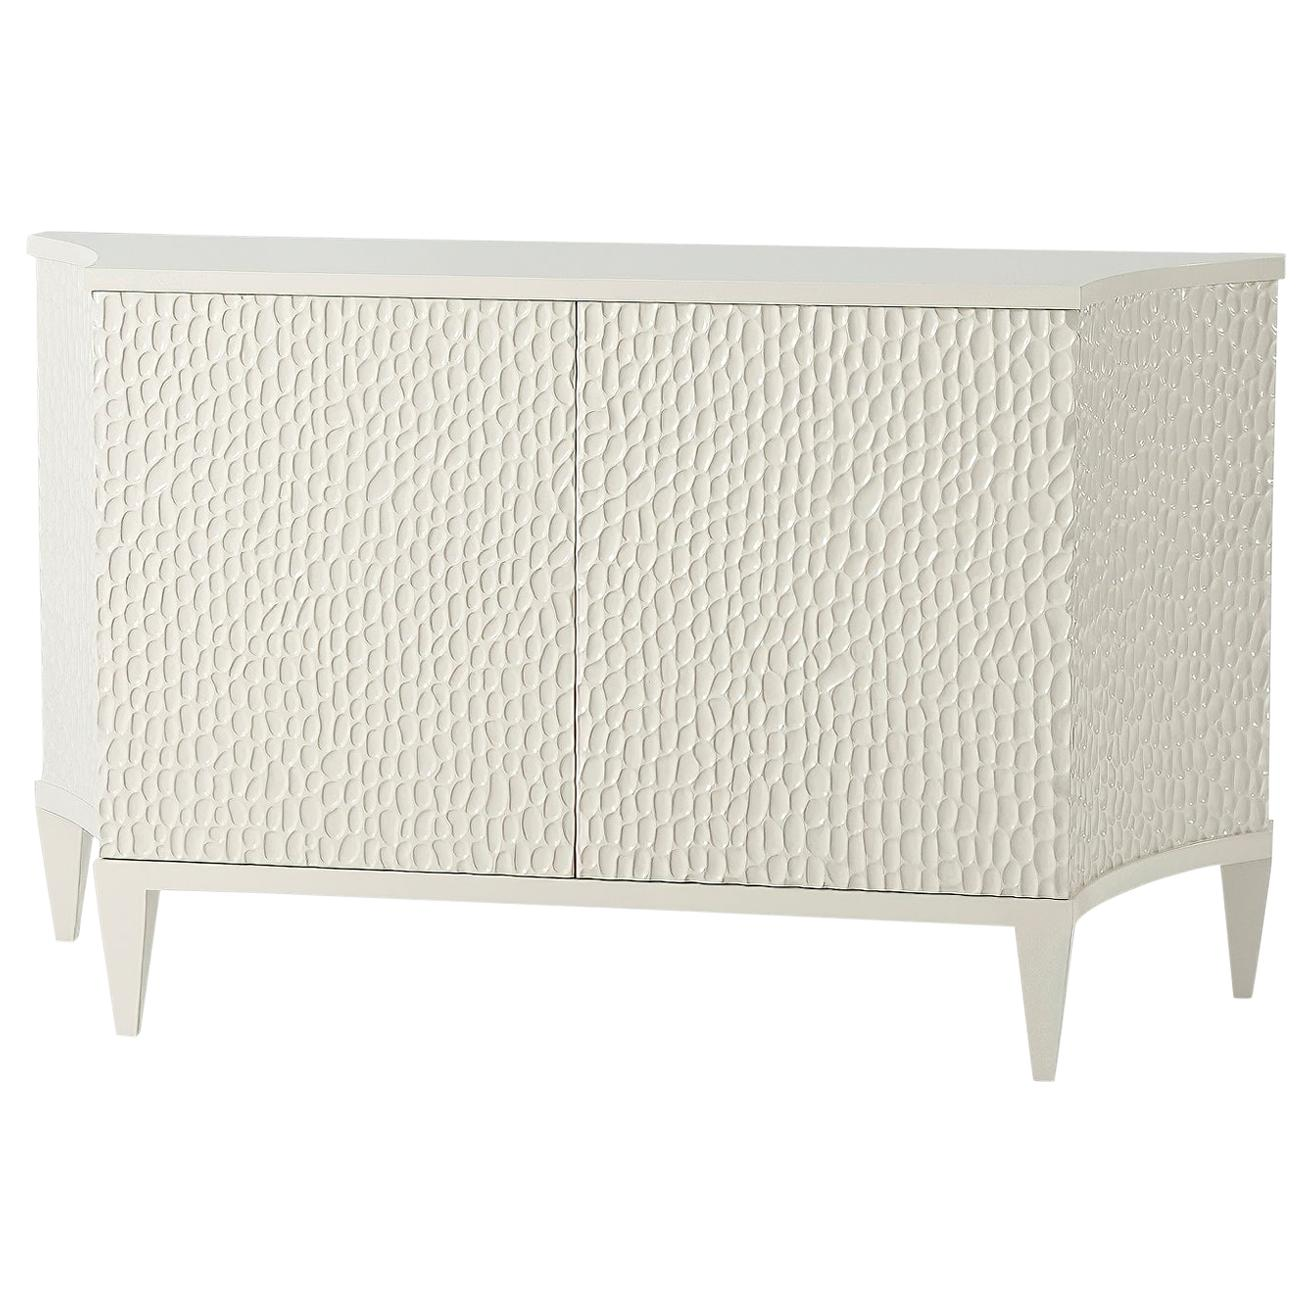 Sarita Luxury Cabinet Metal Structure Jewel Handles And Wooden Two Fabric Effect For Sale At 1stdibs